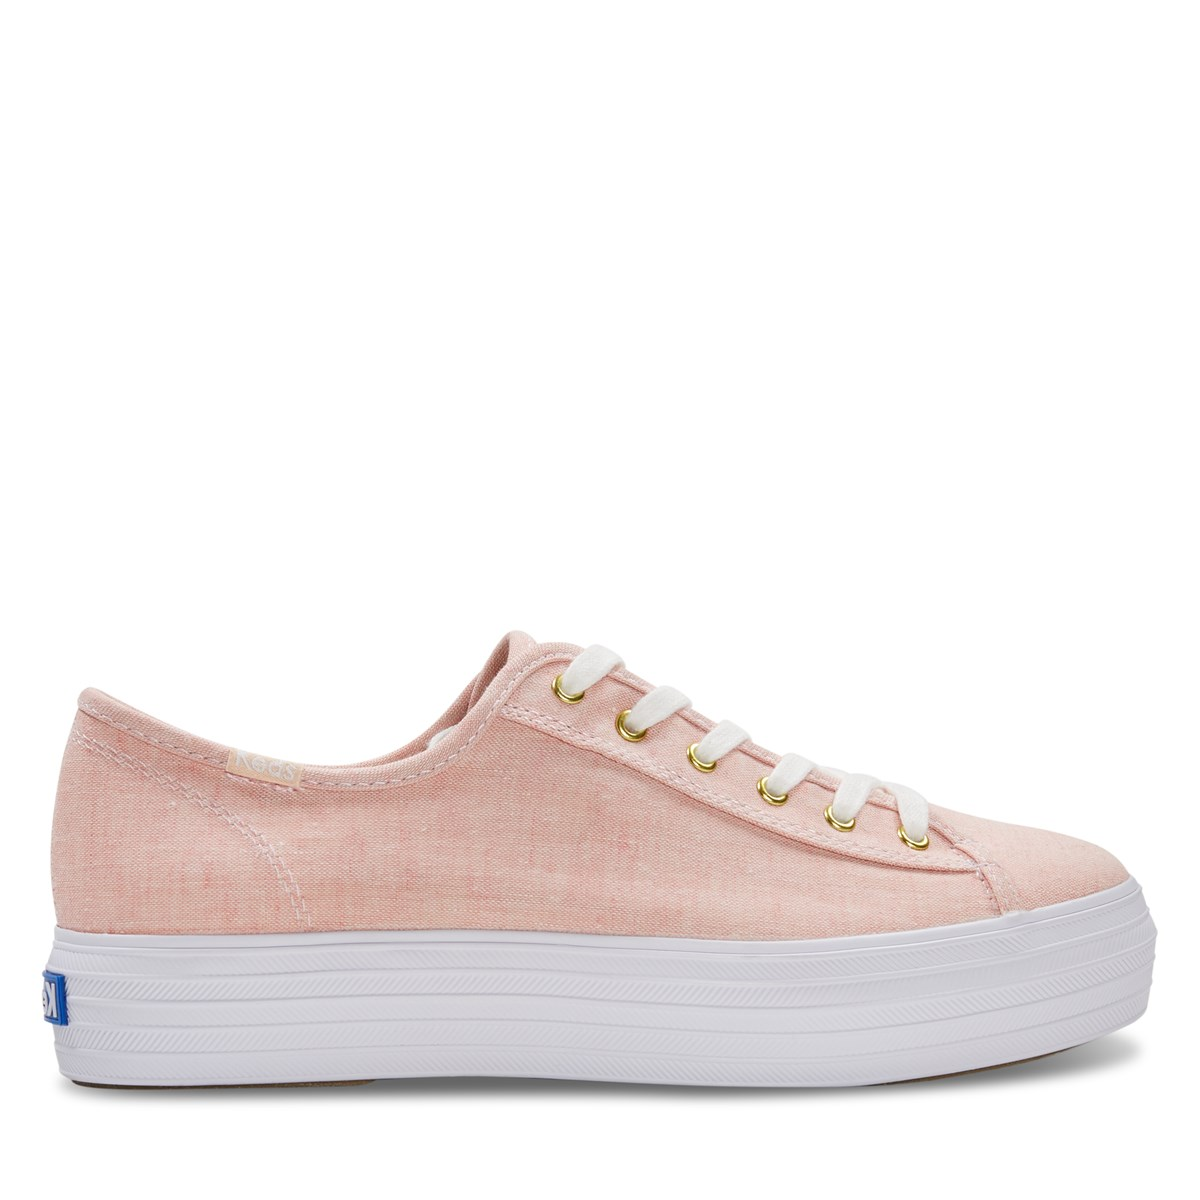 Women's Triple Kick Sneakers in Pink